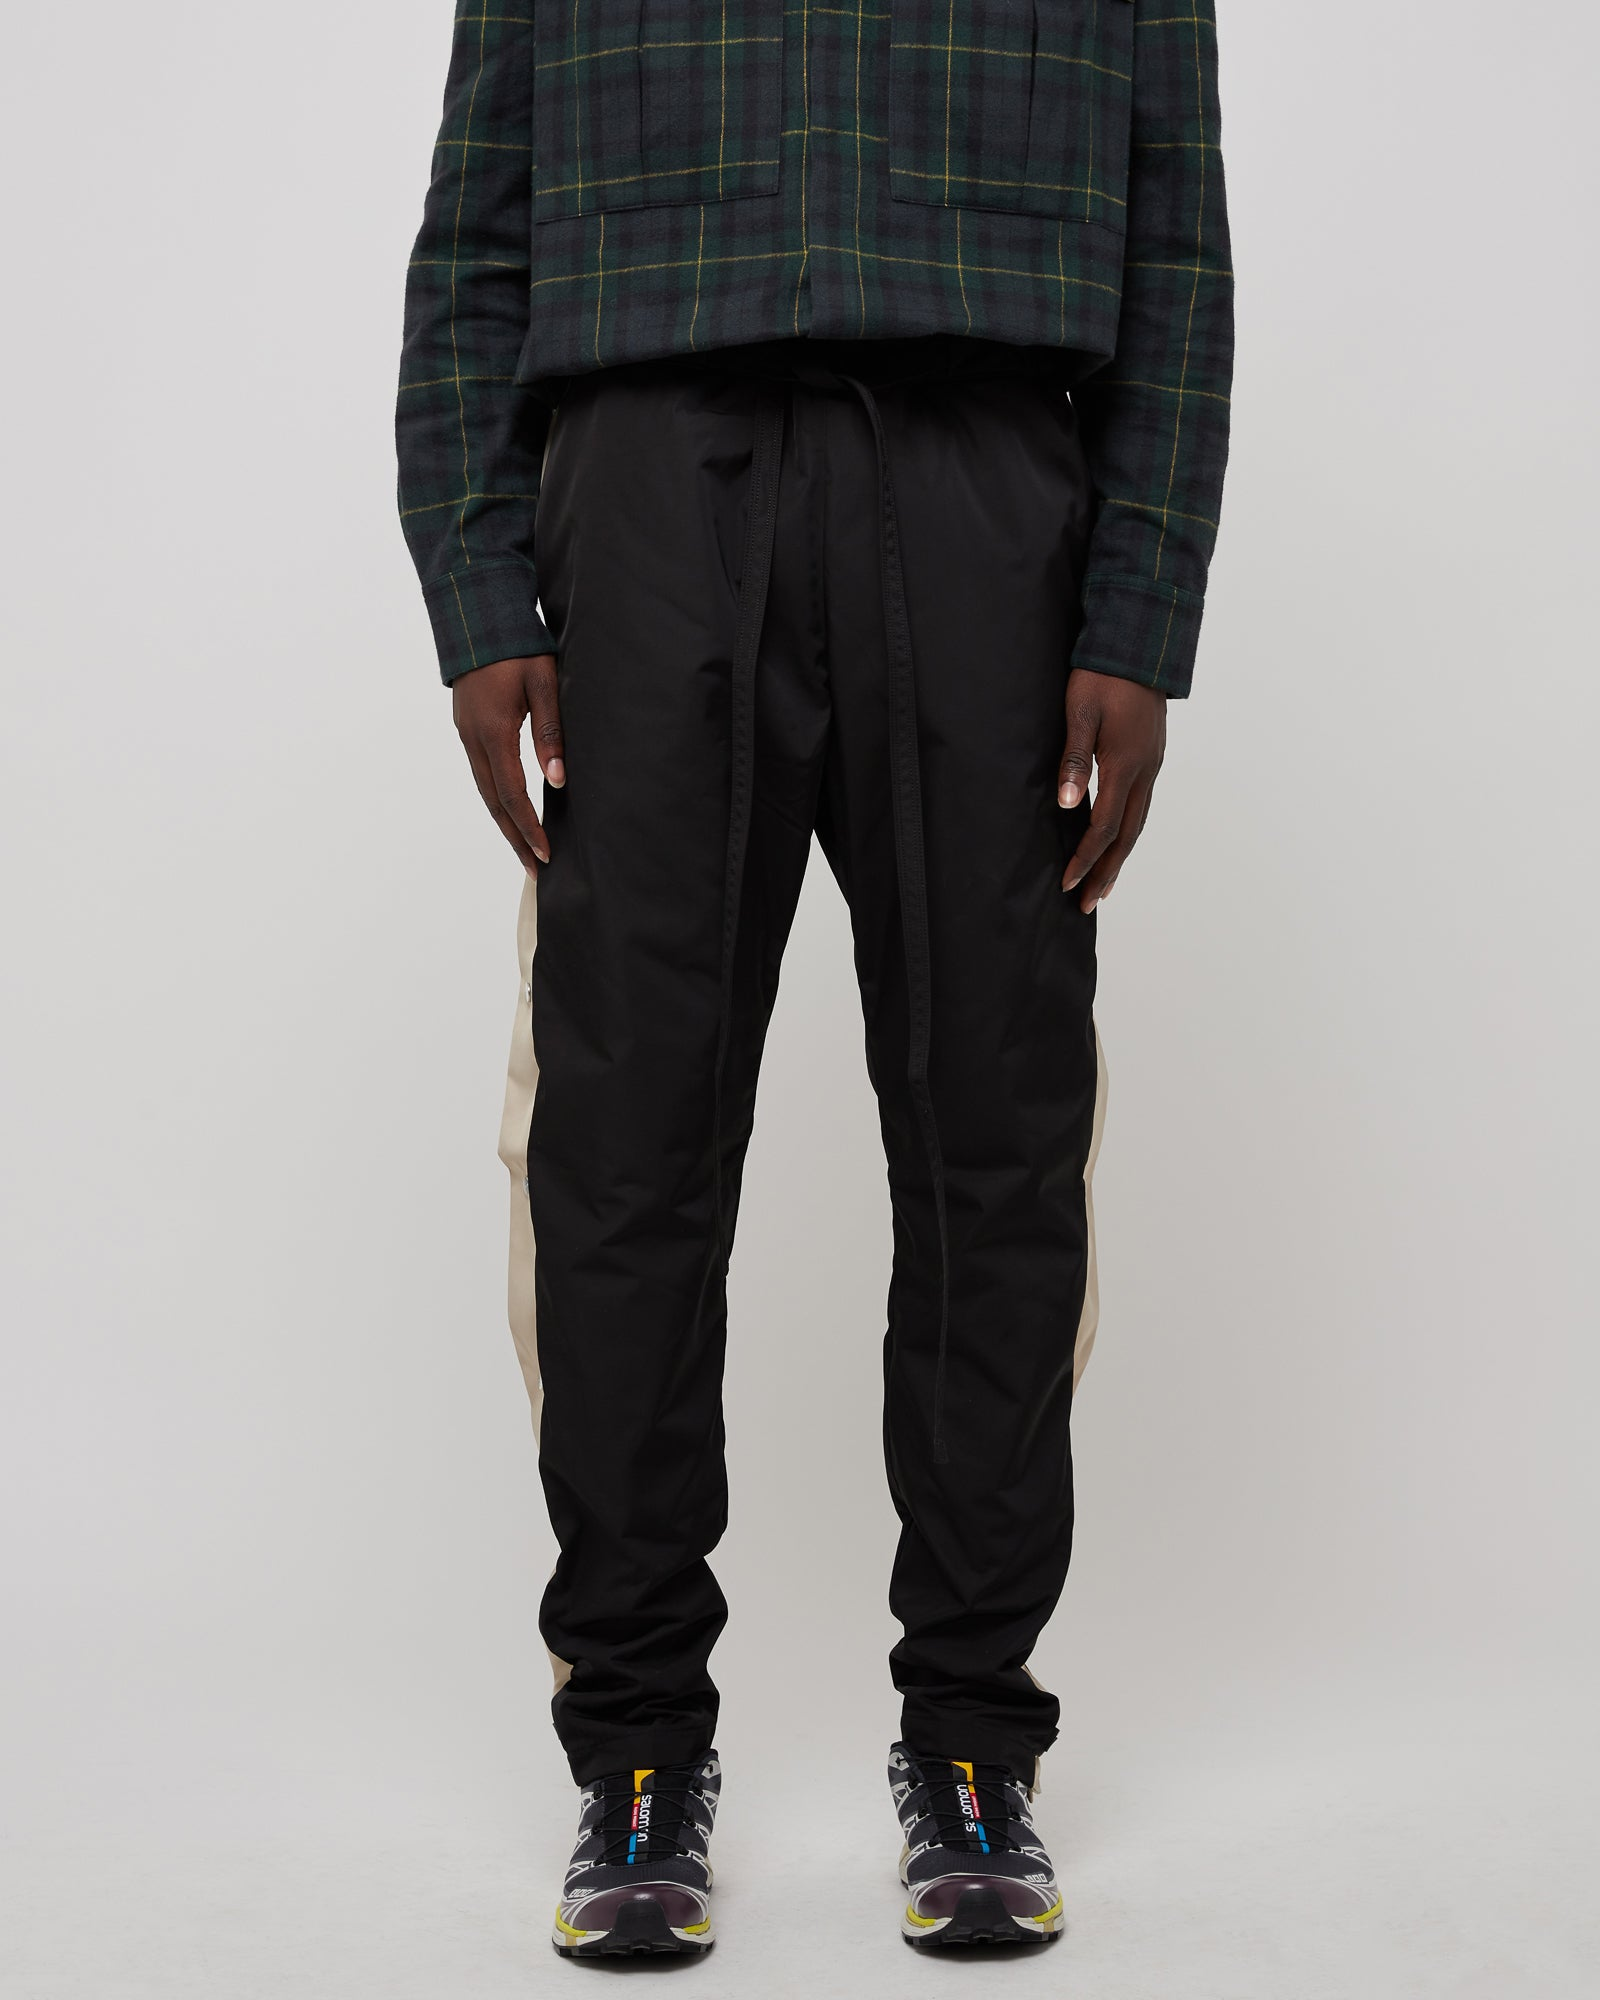 Striped Baggy Tearaway Pant in Black Bone